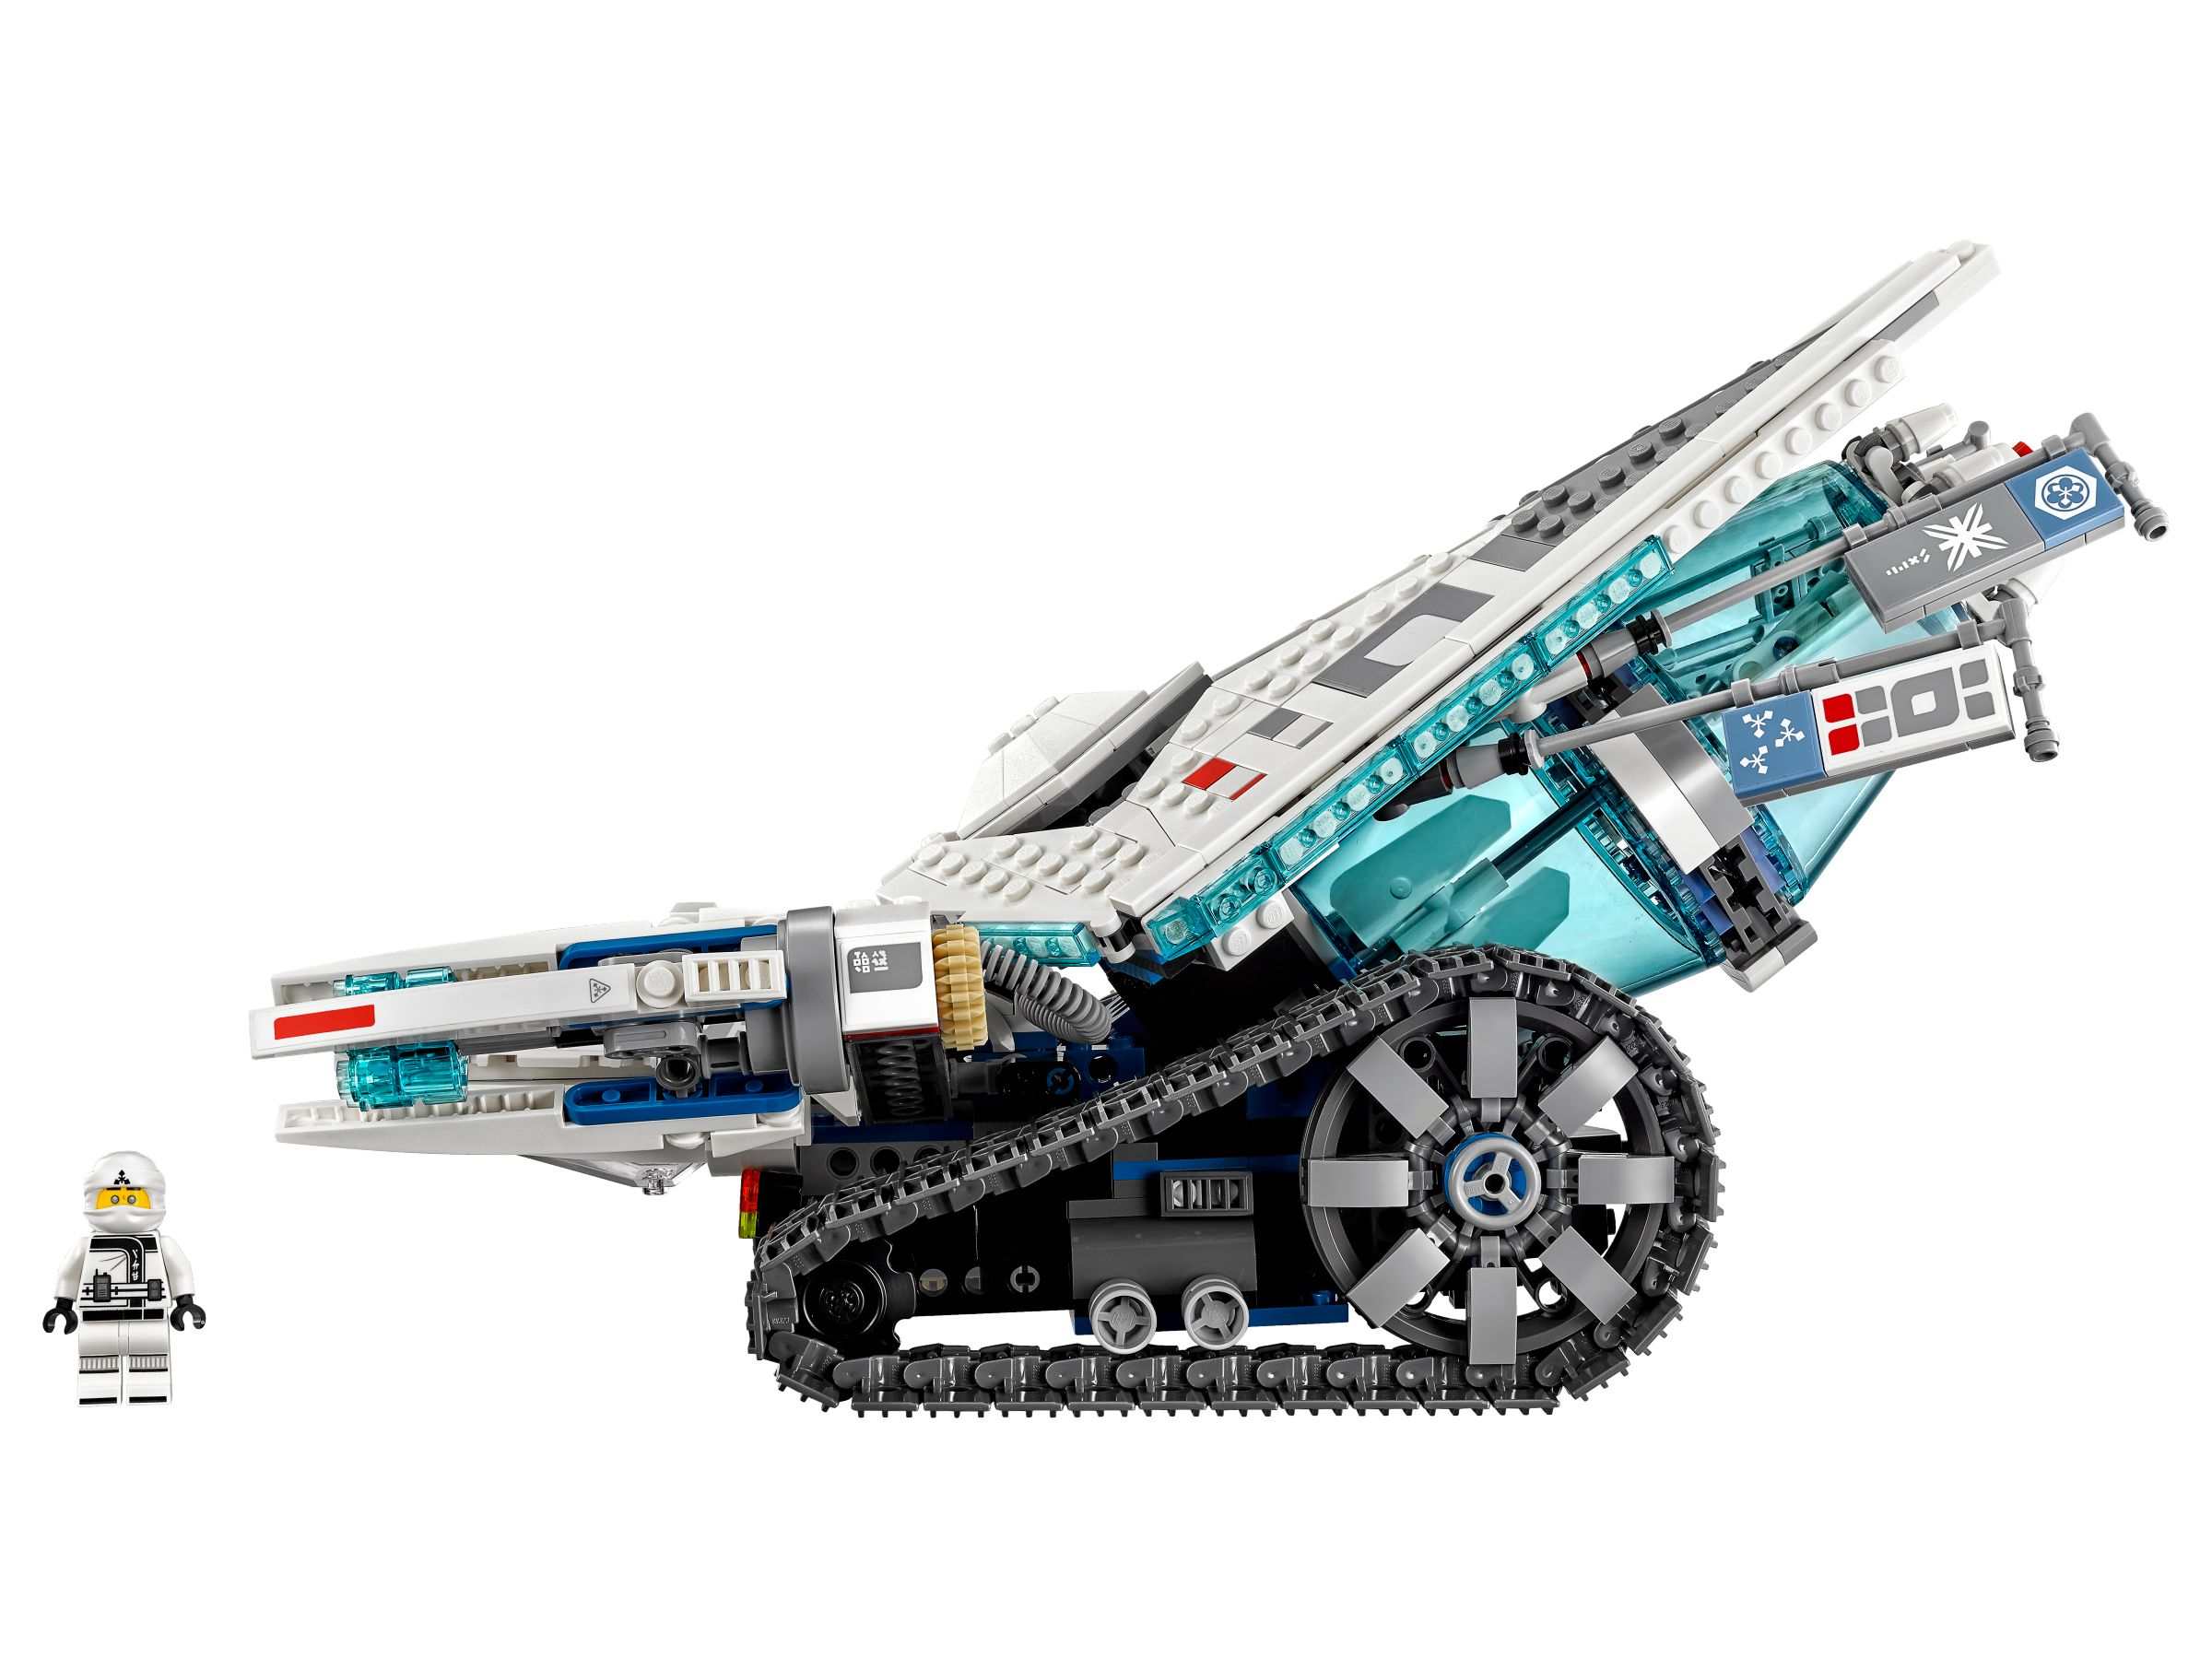 LEGO The LEGO Ninjago Movie 70616 Zane's Eis-Raupe LEGO_70616_alt7.jpg